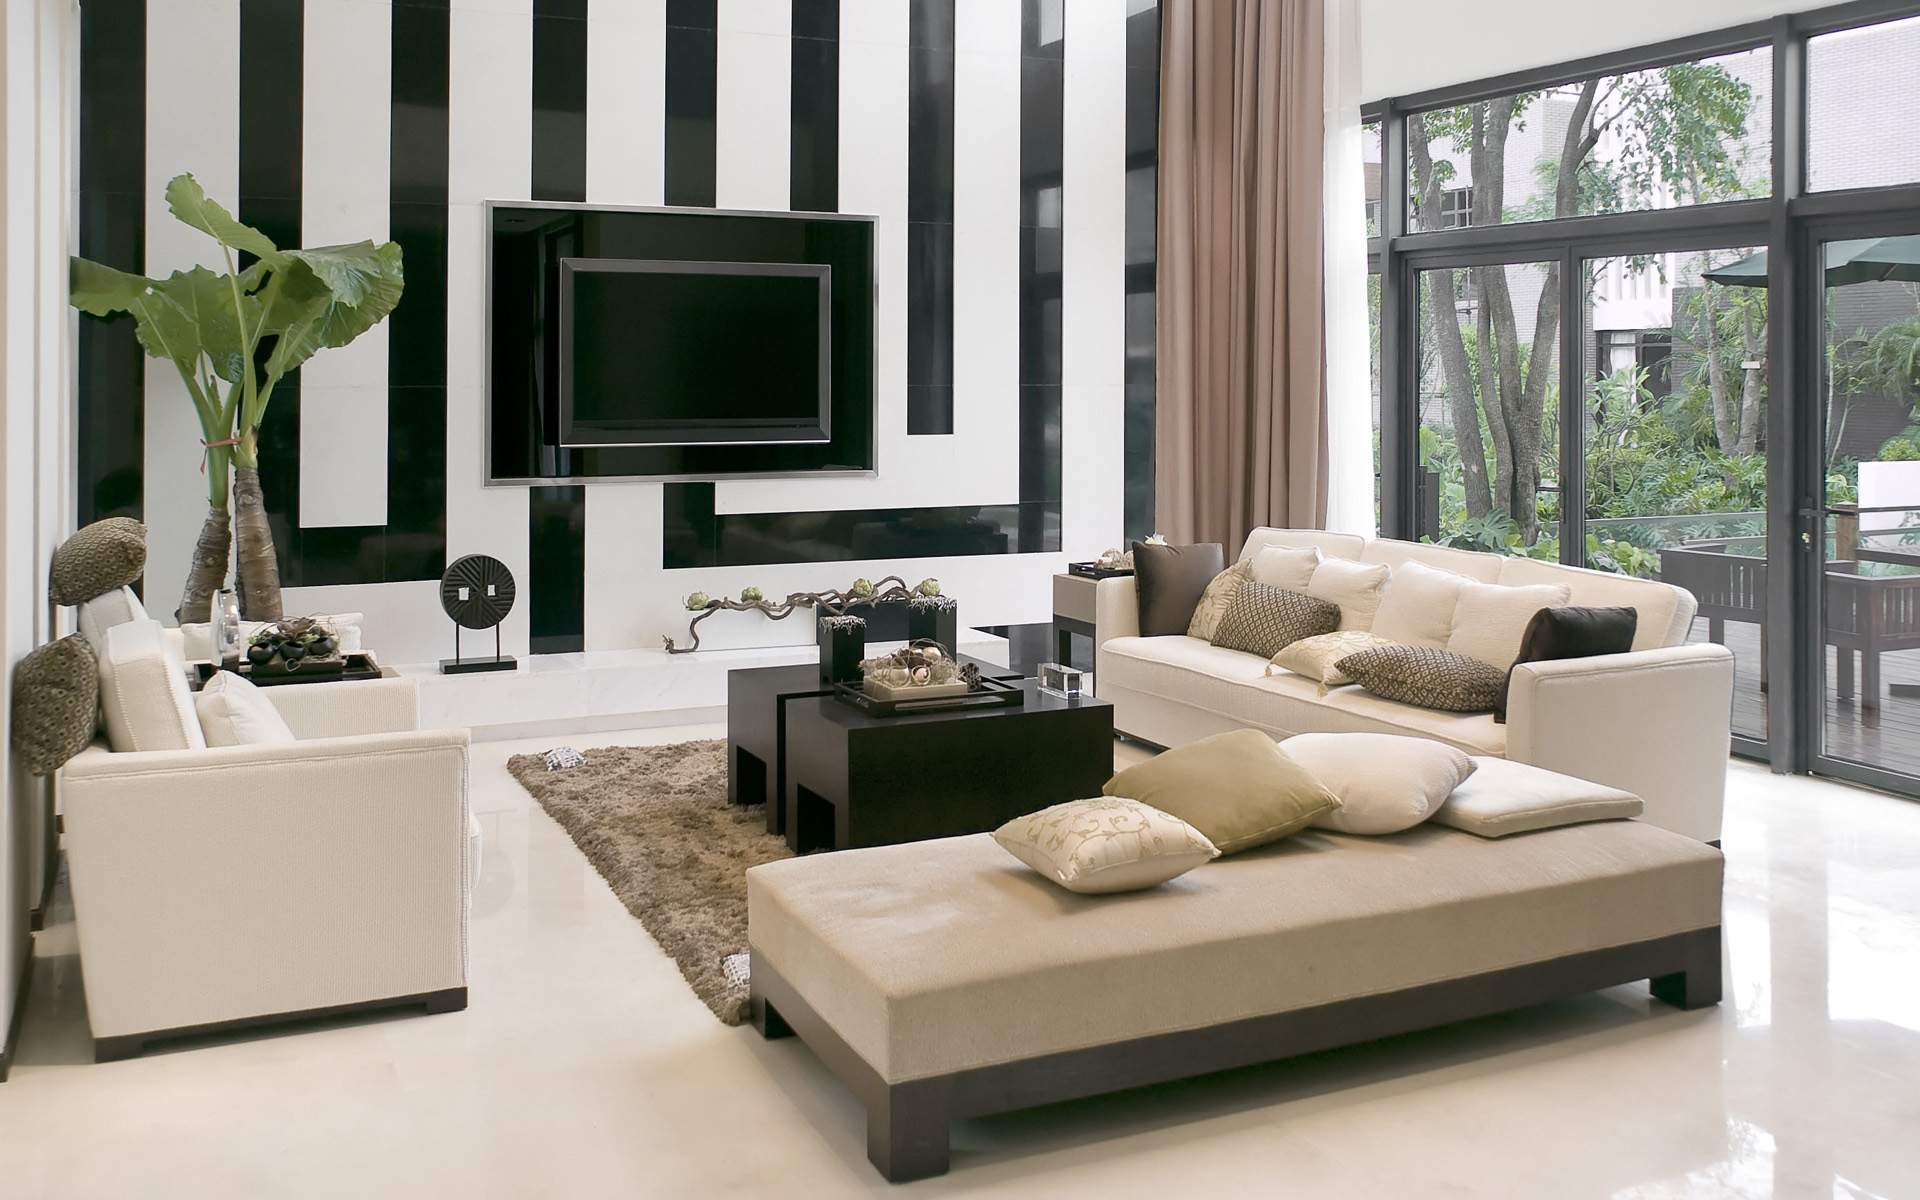 Modern Furniture Styles  Modern Furniture And Interior Design Has To Re  Idea Styles. Modern Furniture Styles  Modern Furniture And Interior Design Has